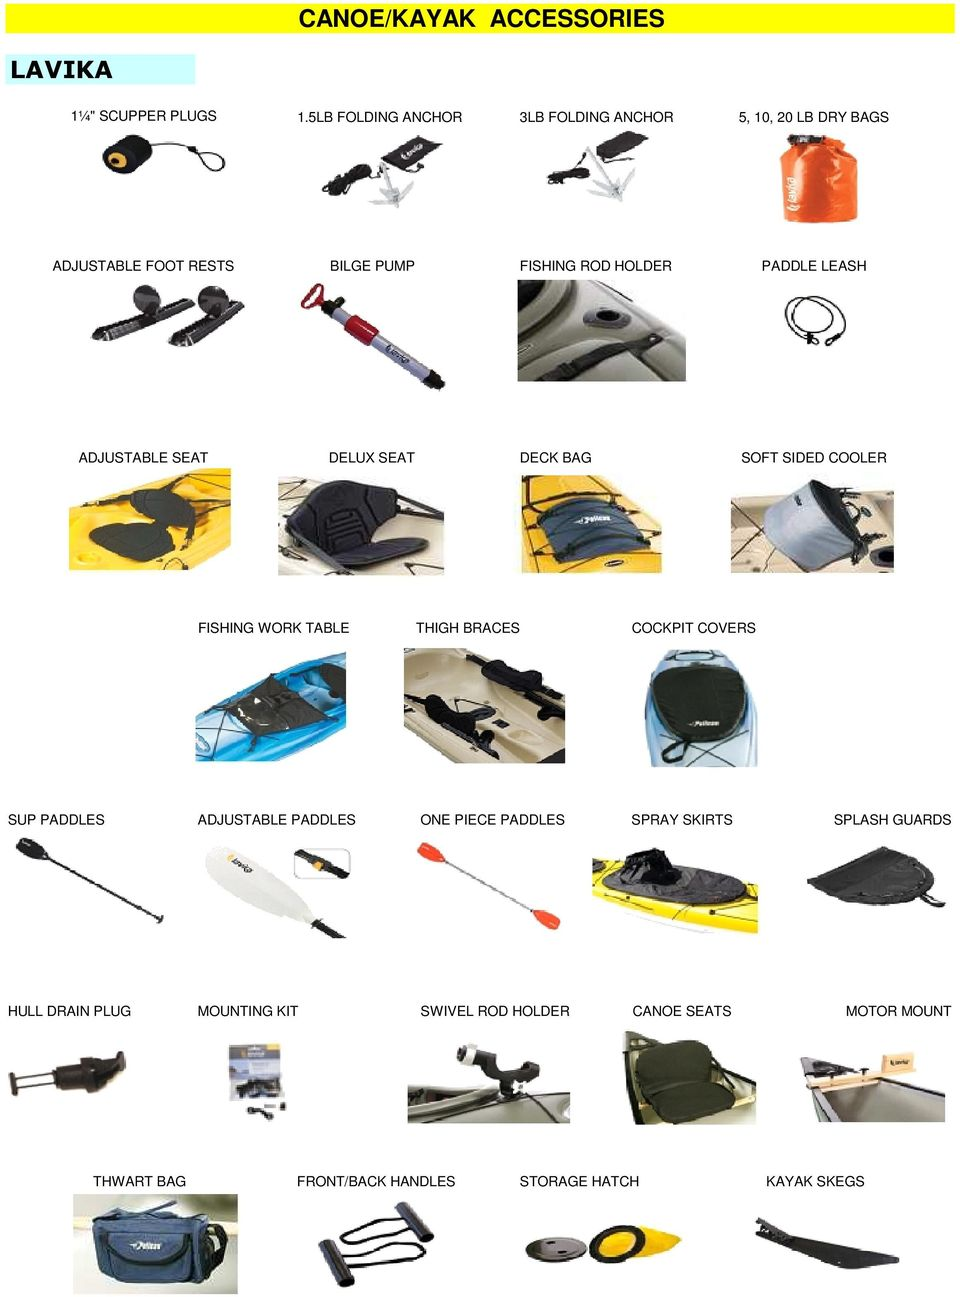 LEASH ADJUSTABLE SEAT DELUX SEAT DECK BAG SOFT SIDED COOLER FISHING WORK TABLE THIGH BRACES COCKPIT COVERS SUP PADDLES